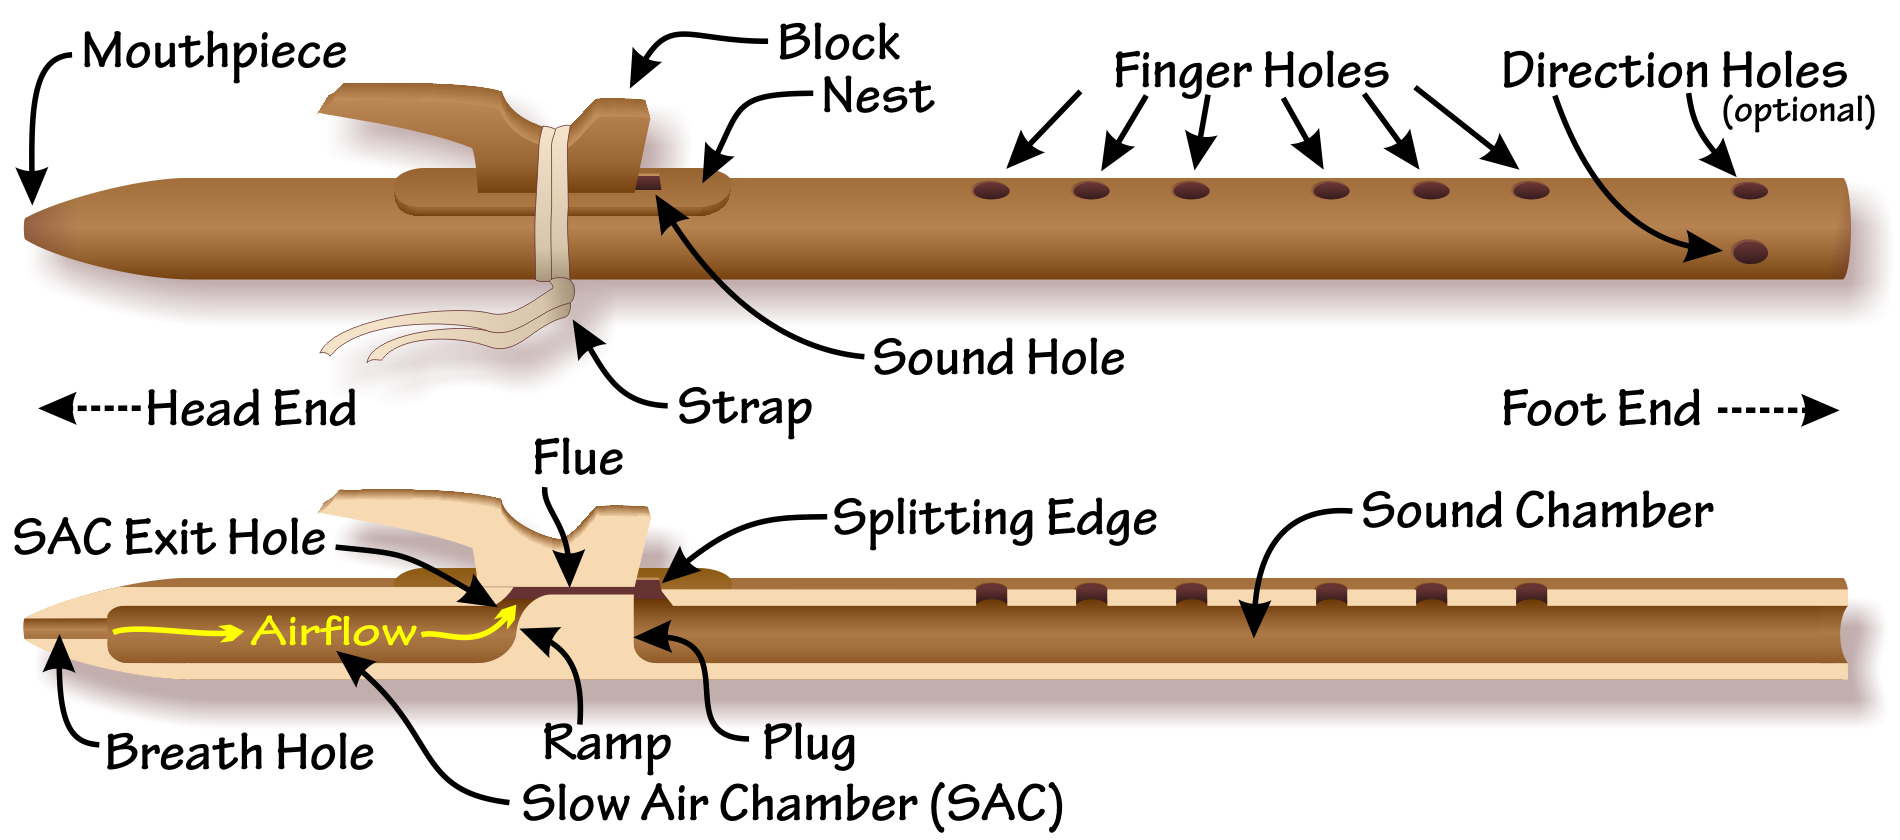 nat am flute diagrams.jpg